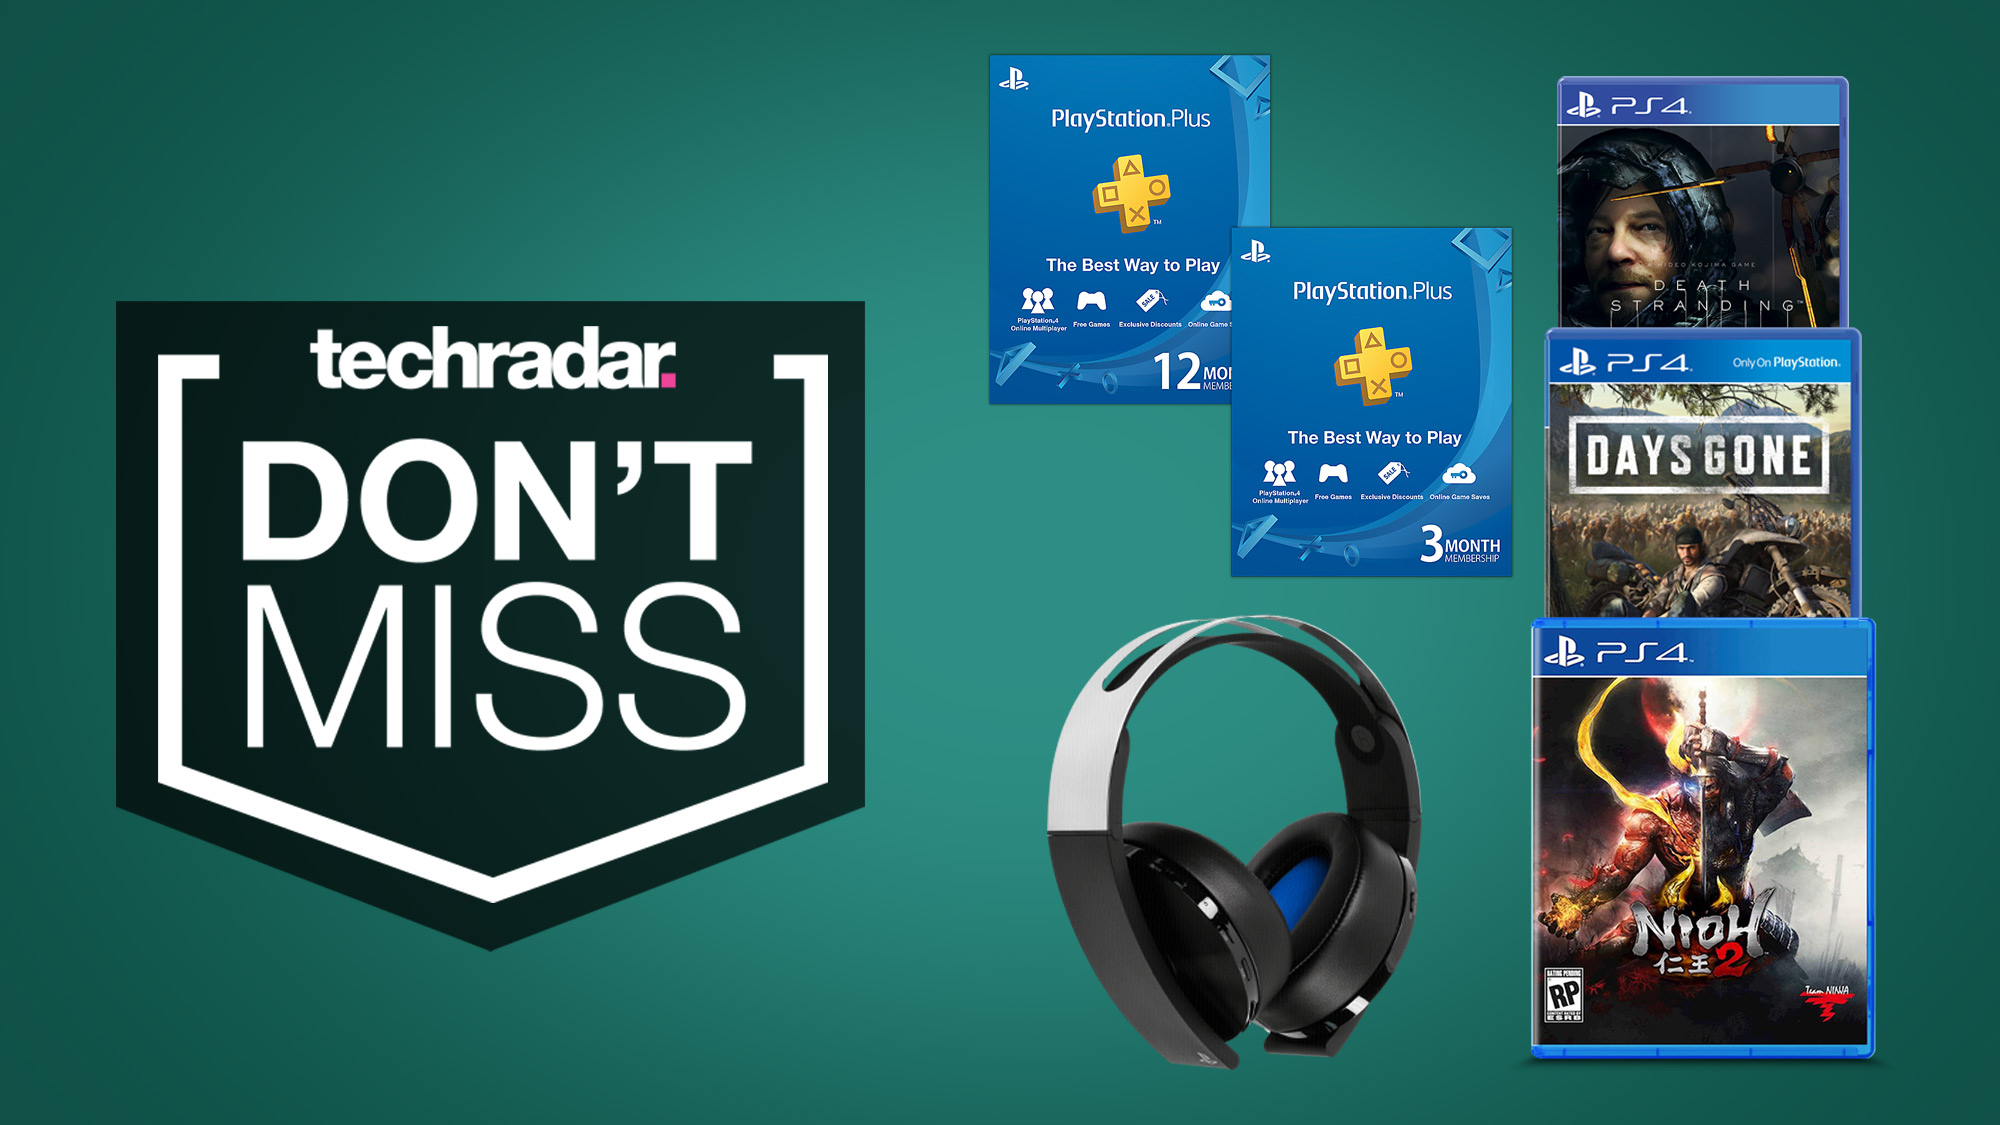 Cheap Ps4 Games Headsets And Ps Plus Deals Are All Still Available In The Days Of Play Sales Techradar